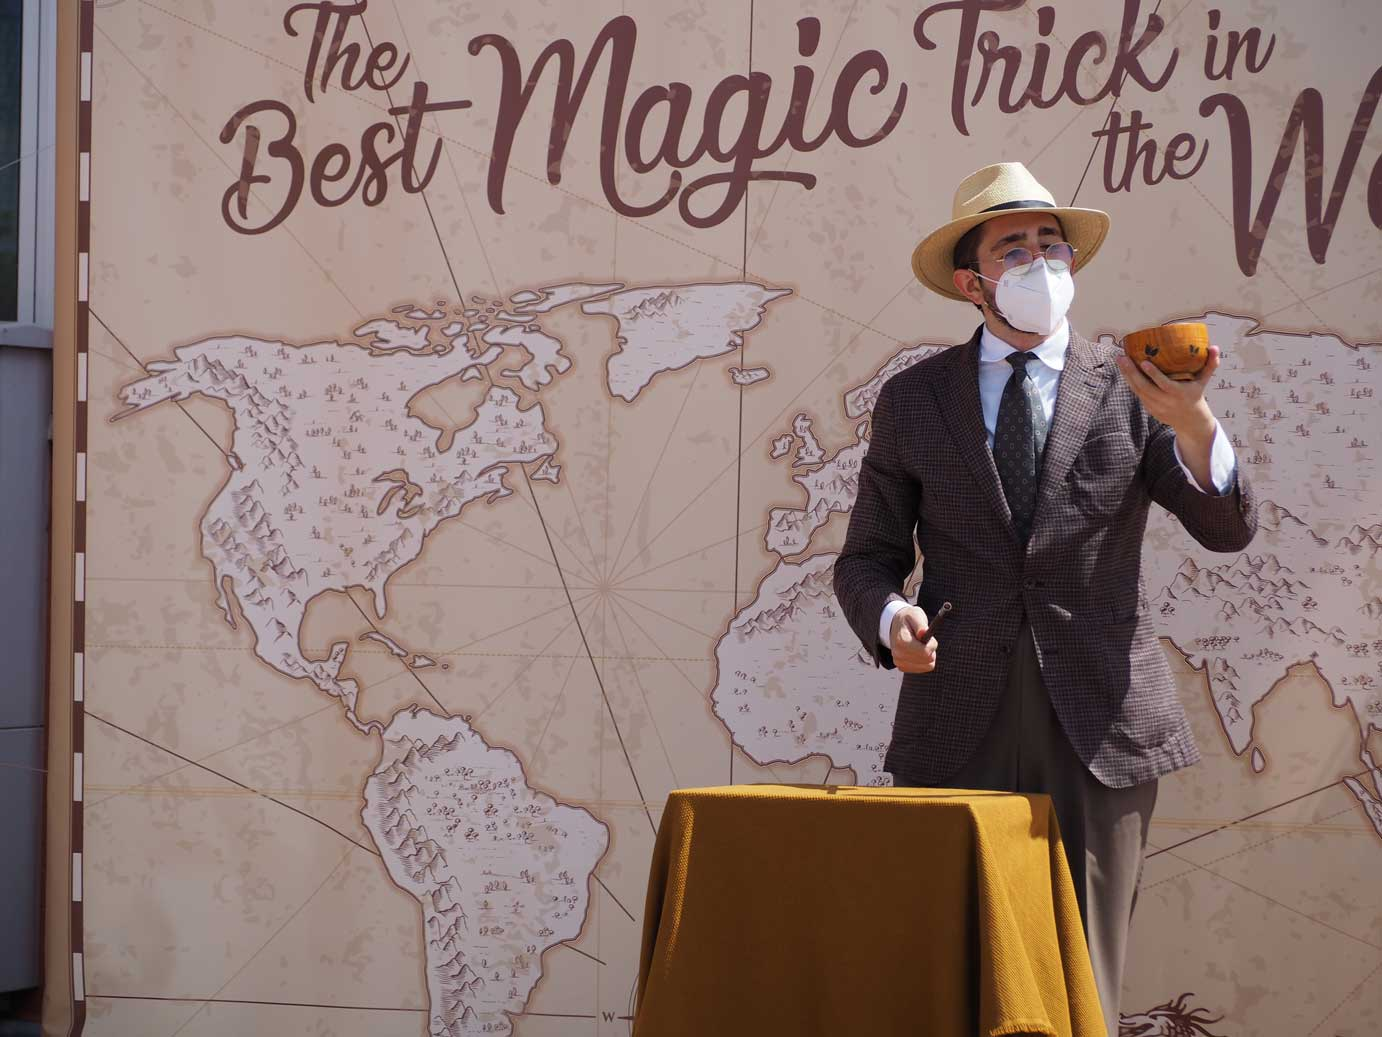 the-best-magic-trick-in-the-world-17